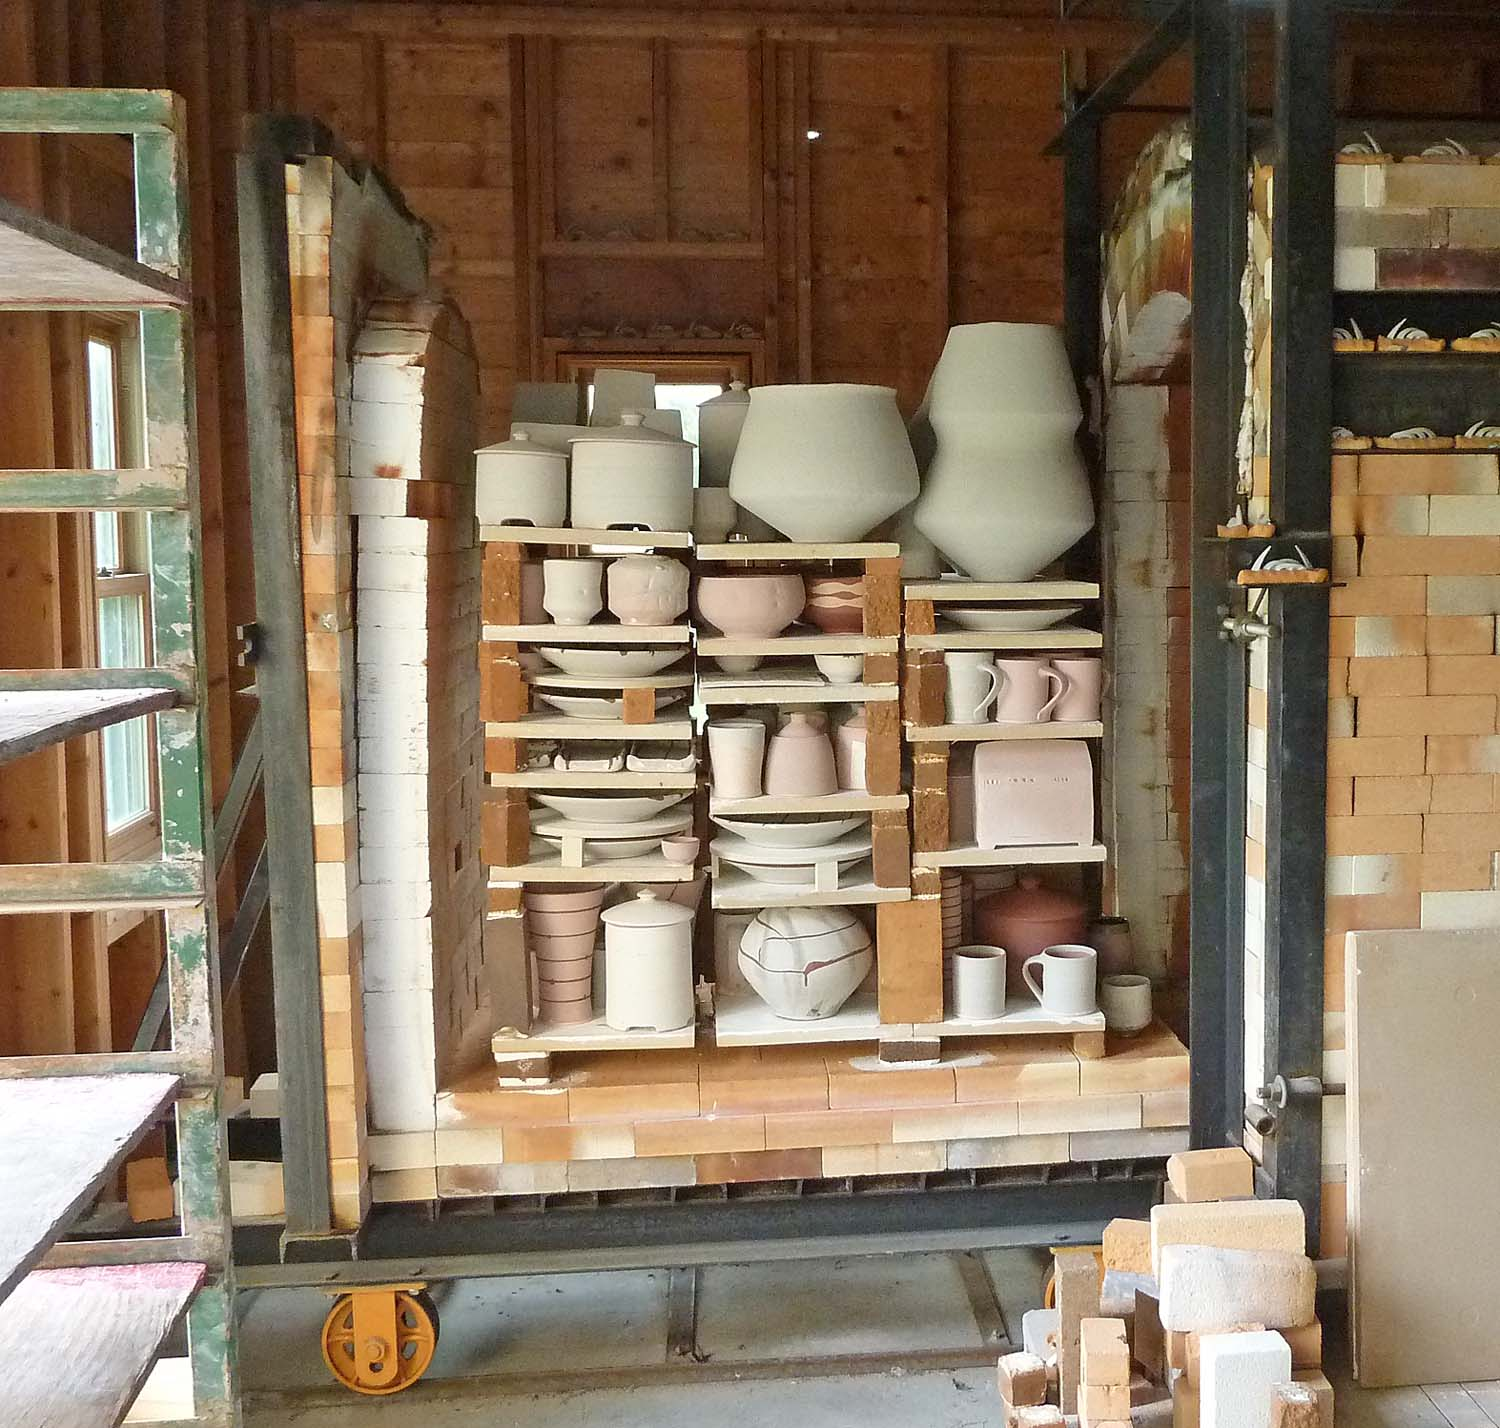 Loaded kiln.